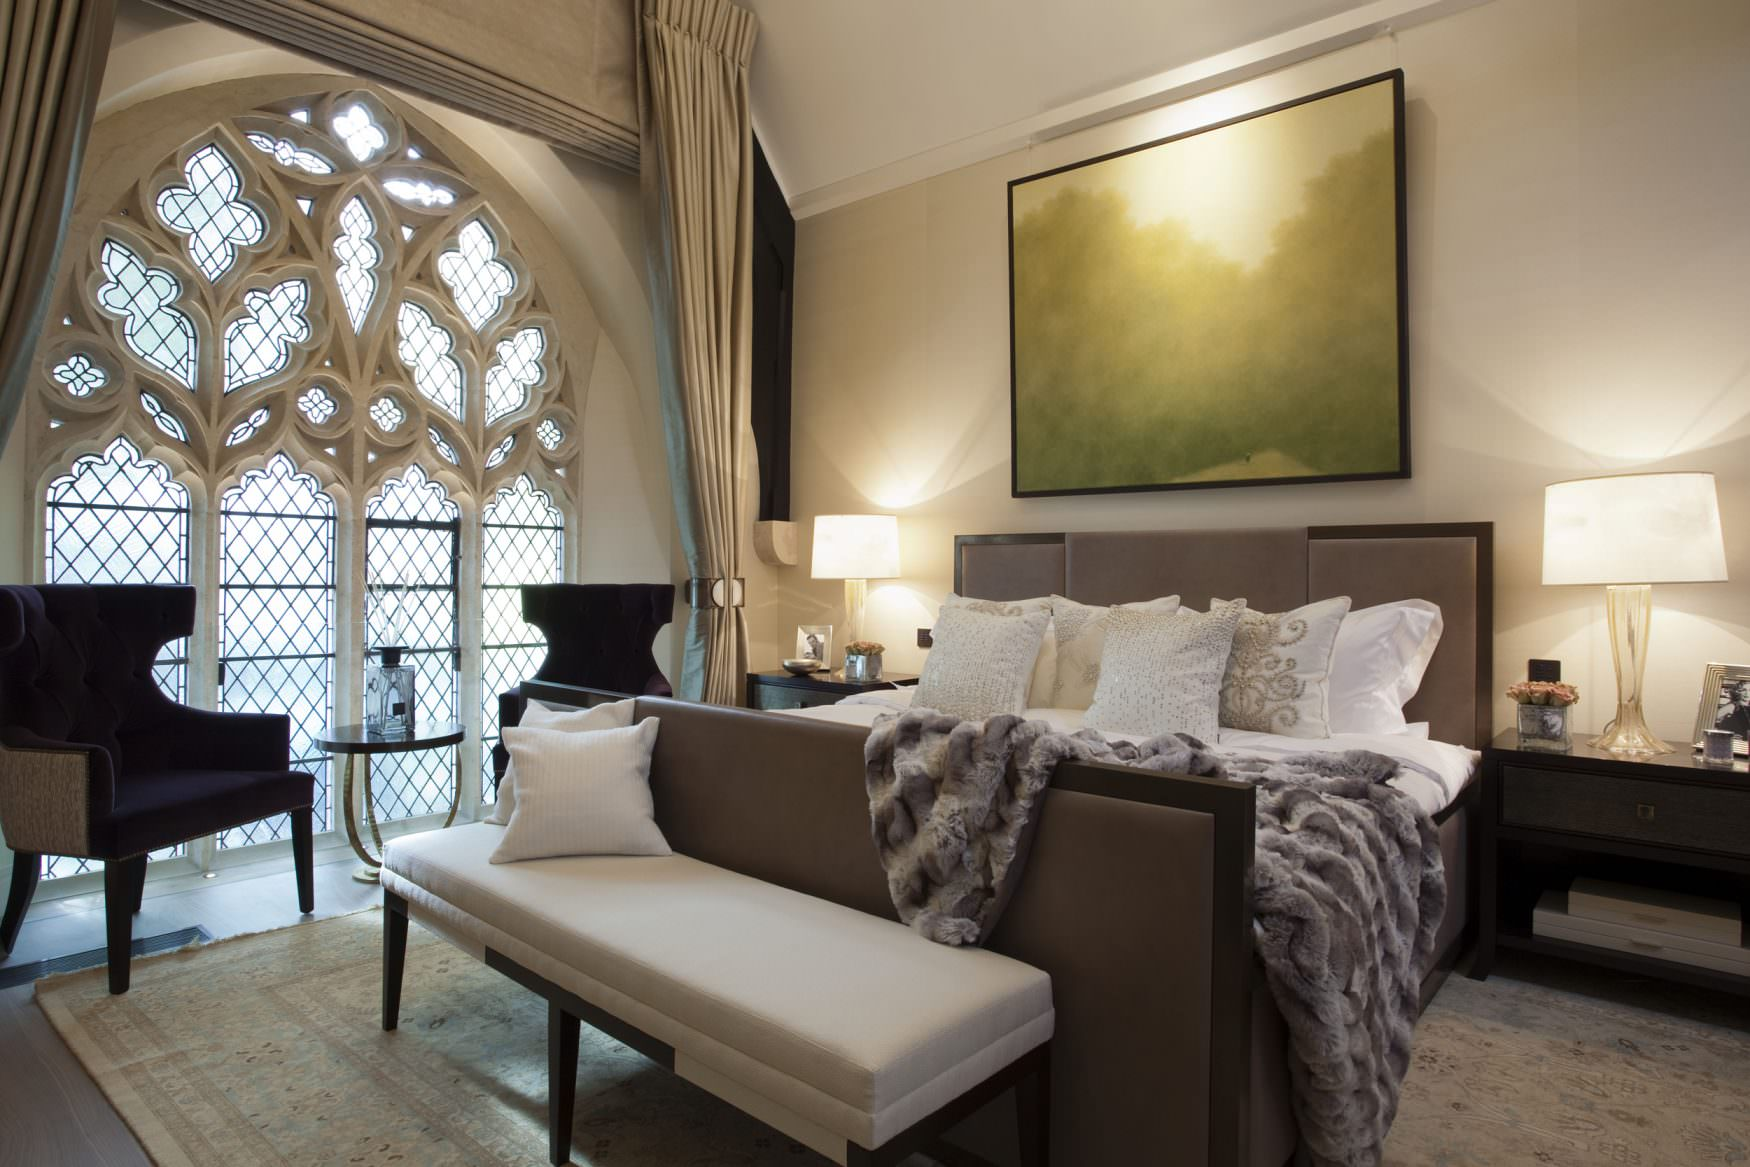 Home taylor interiors - St Saviours Church Knightsbridge